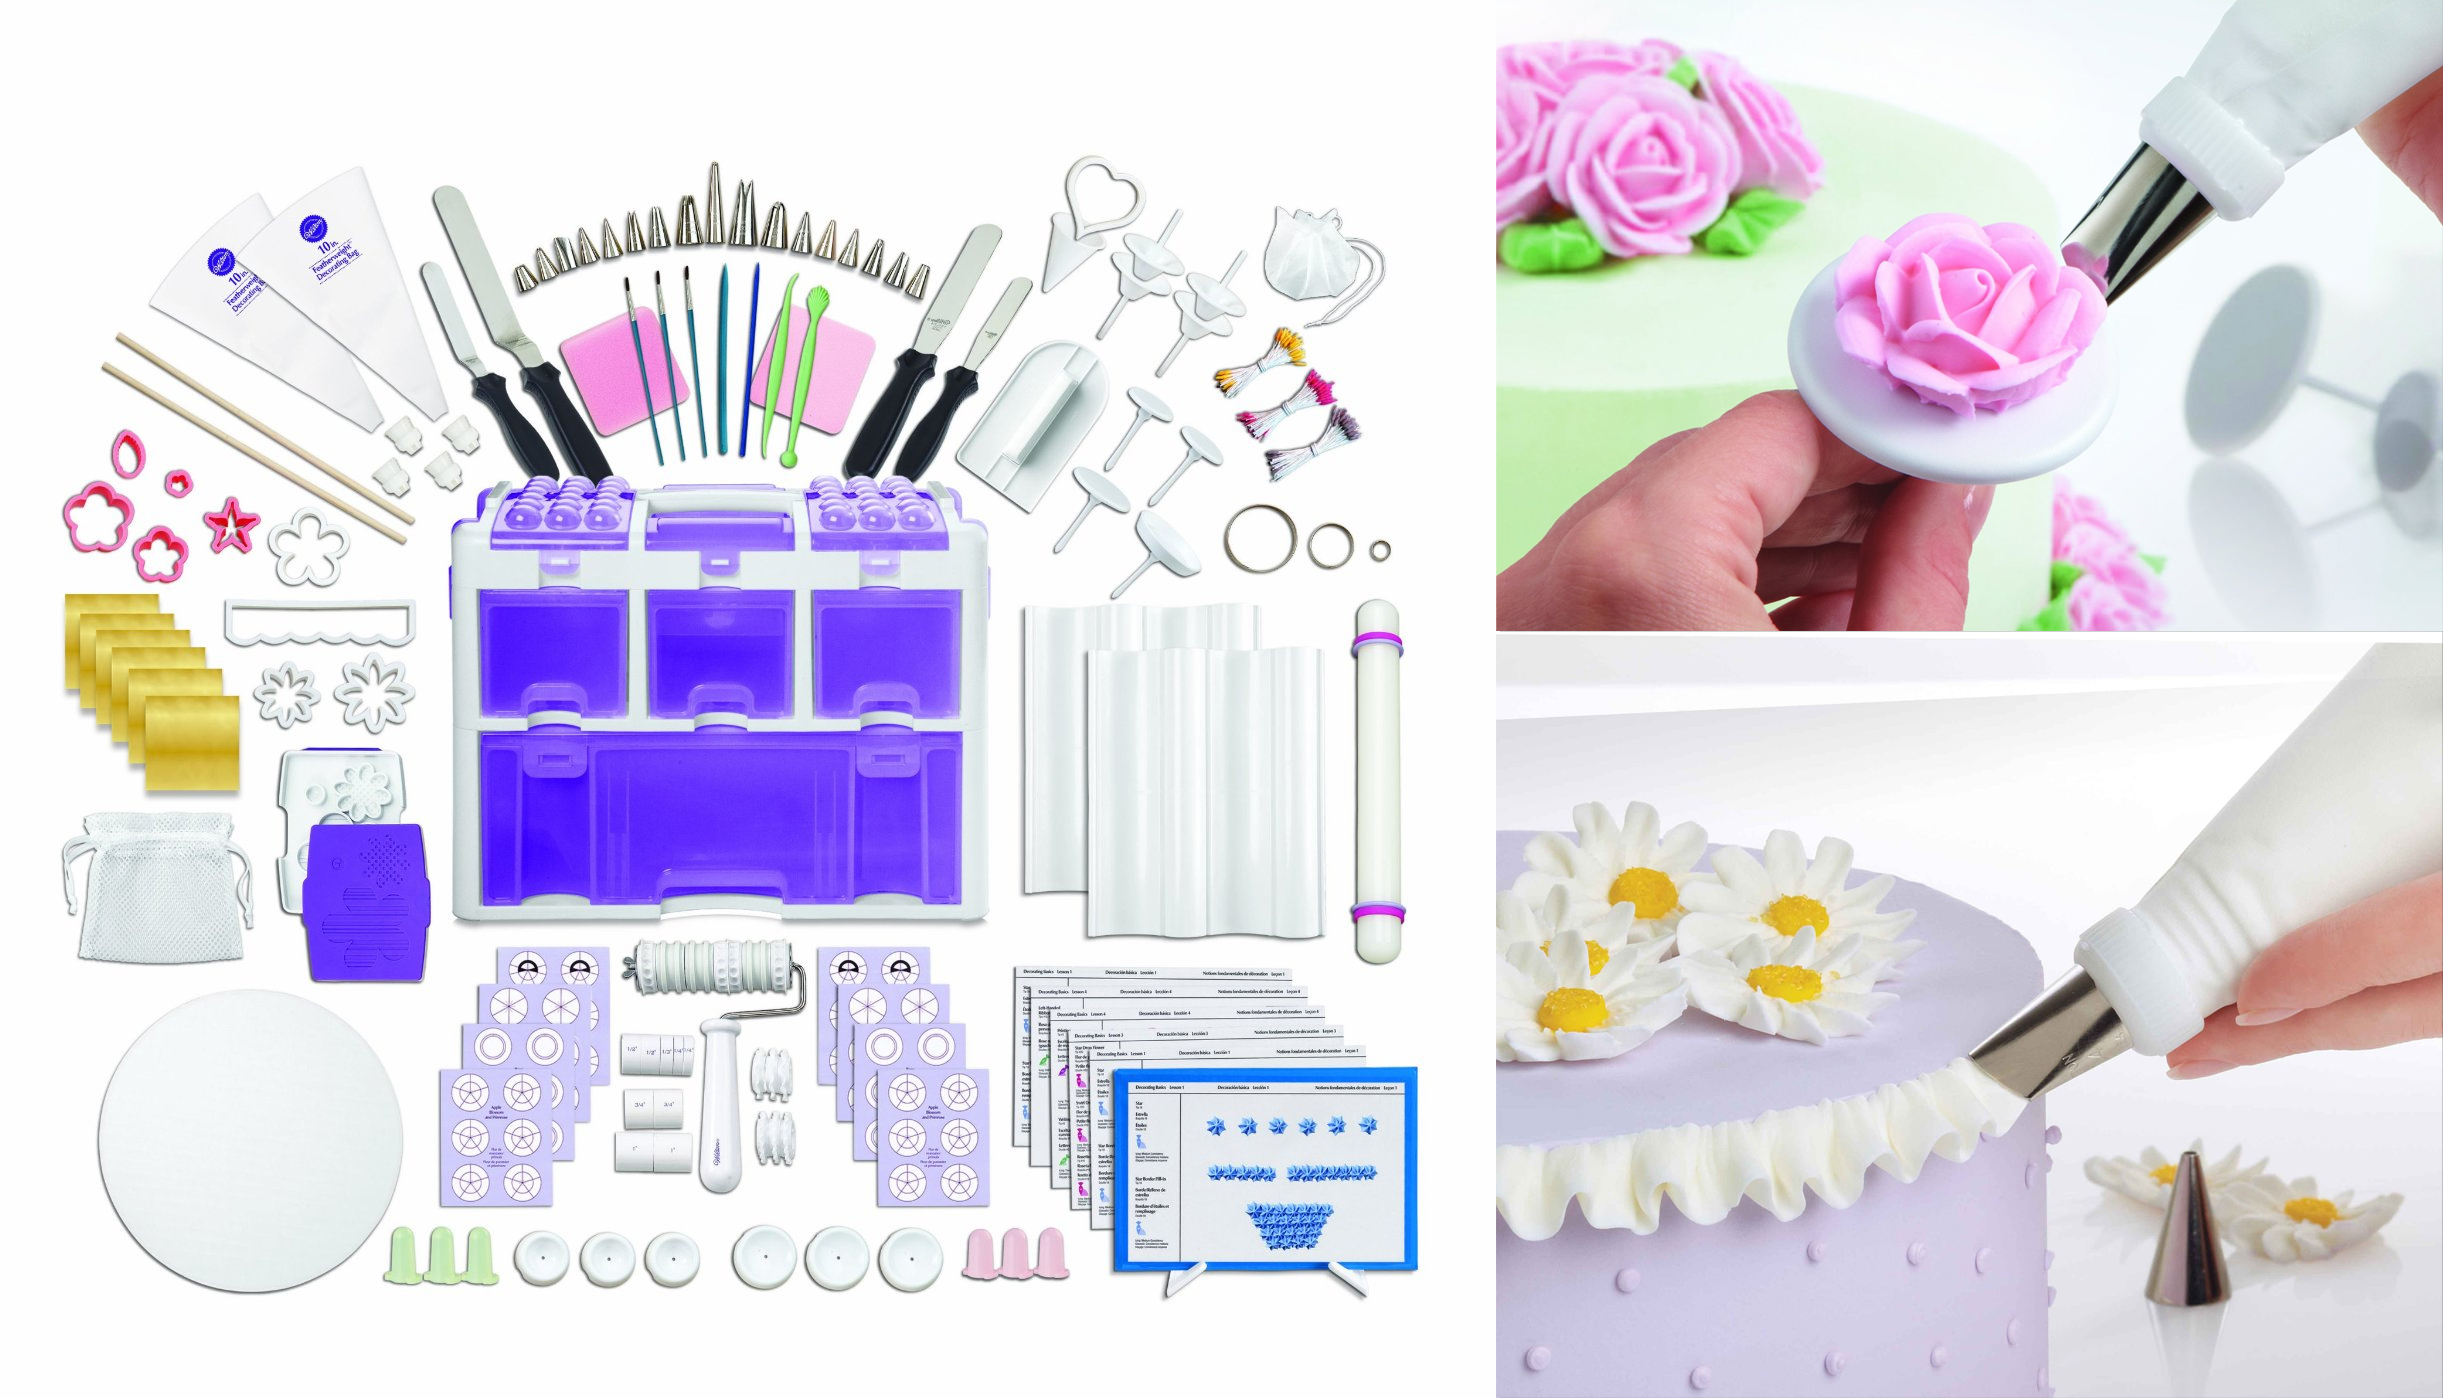 best gifts 2016 for bakers Professional Cake Decorating Set